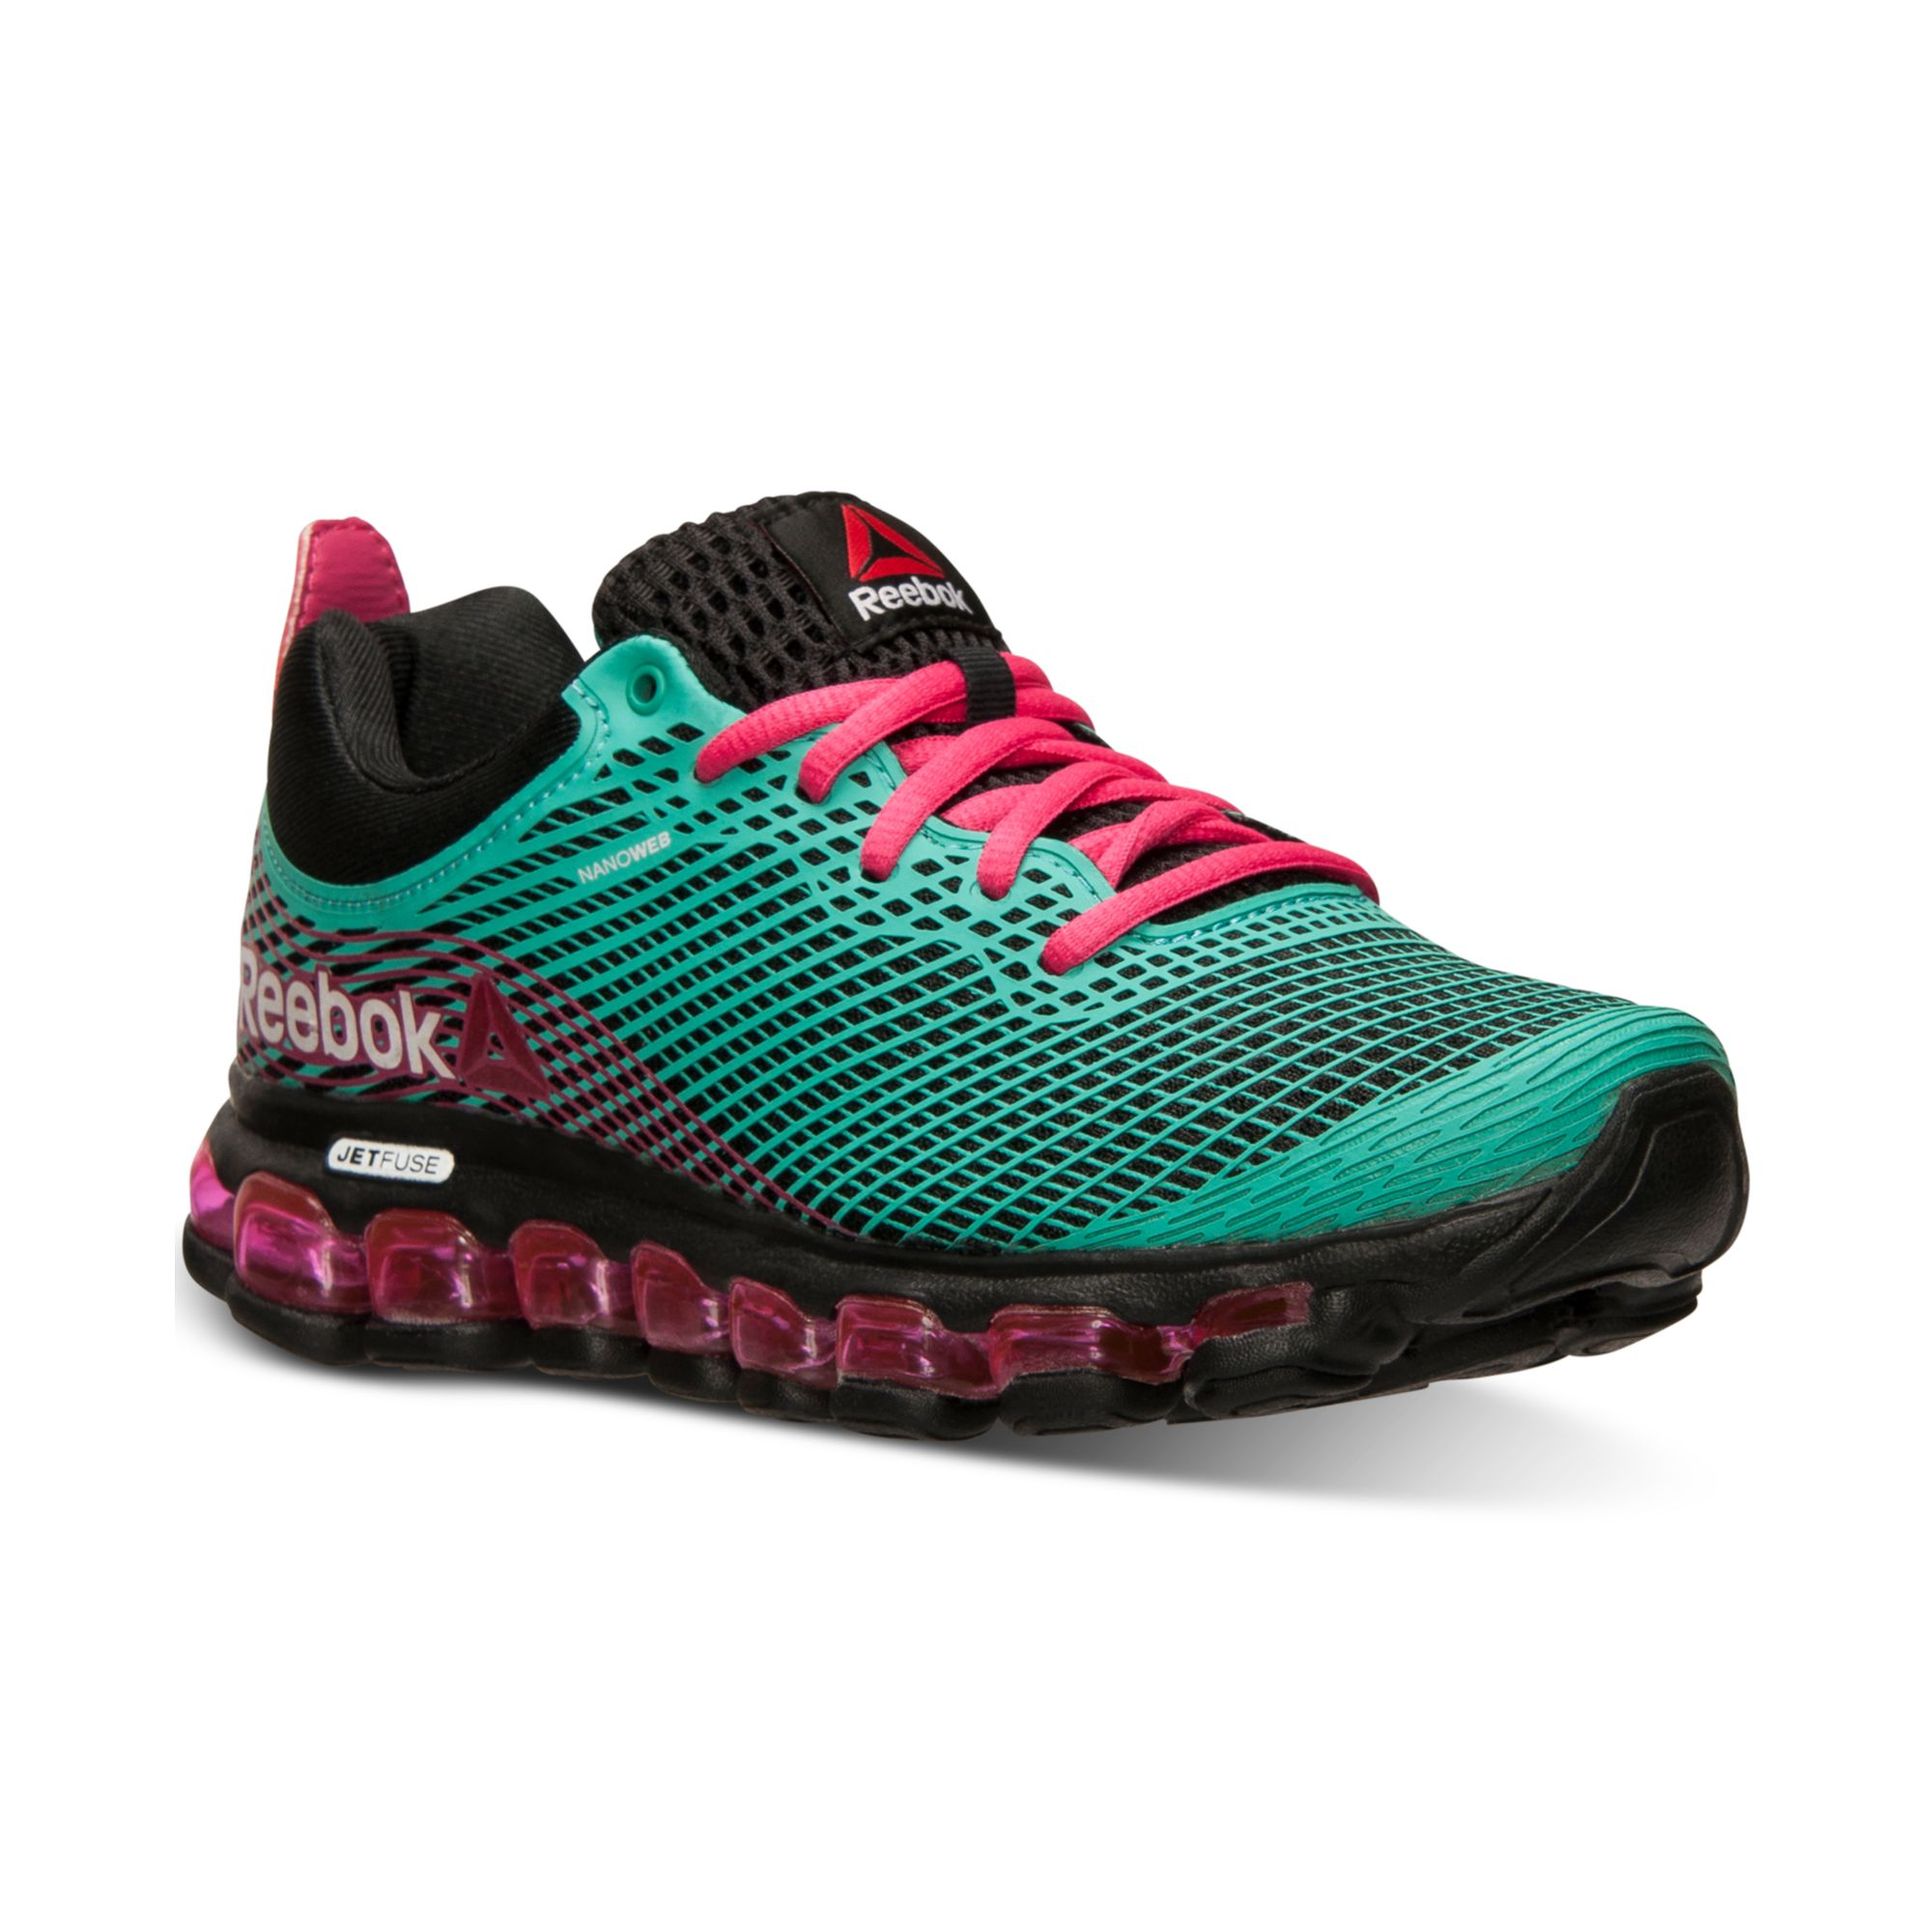 huge discount 60766 efac9 ... spain lyst reebok womens z jet running sneakers from finish line in  green 5a91c 70977